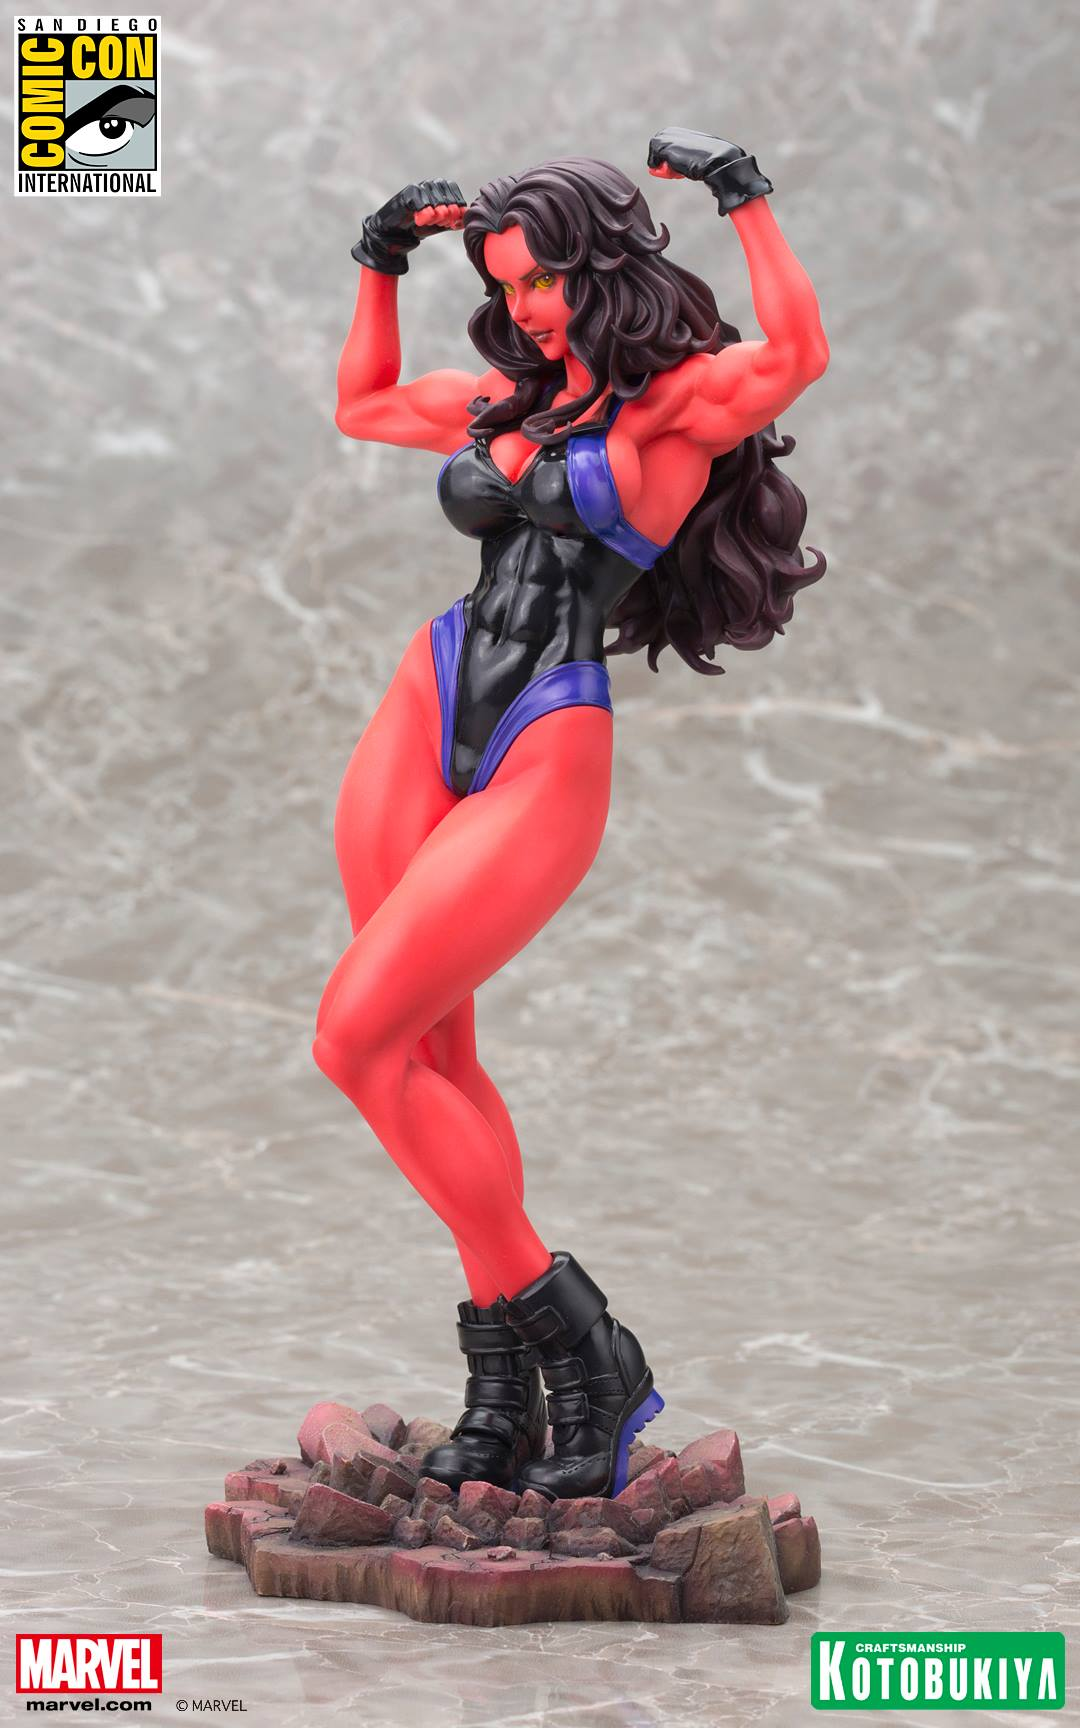 red-she-hulk-bishoujo-statue-2015-sdcc-exclusive-marvel-kotobukiya-2